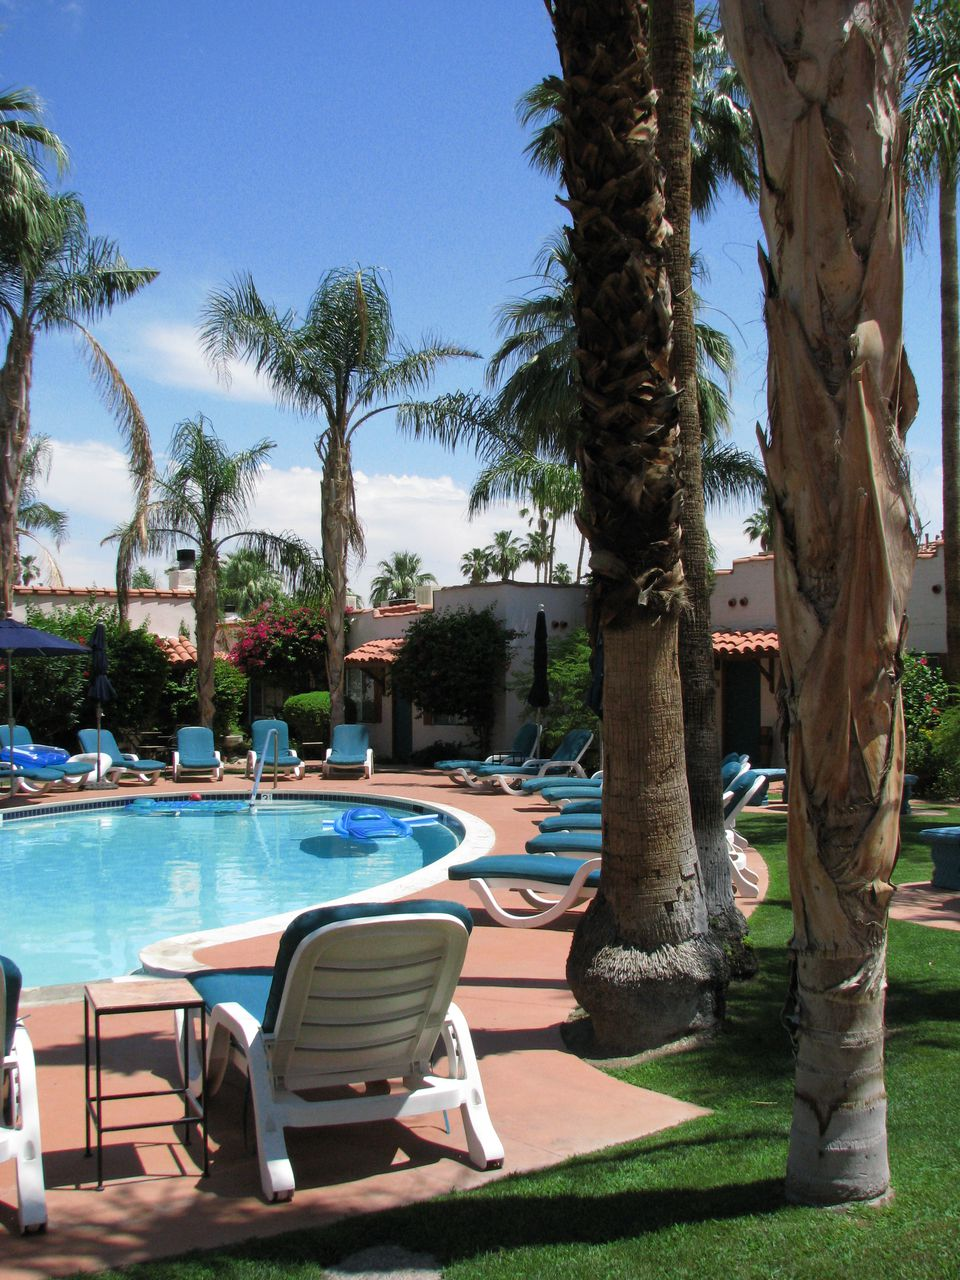 gay friendly resorts in palm springs